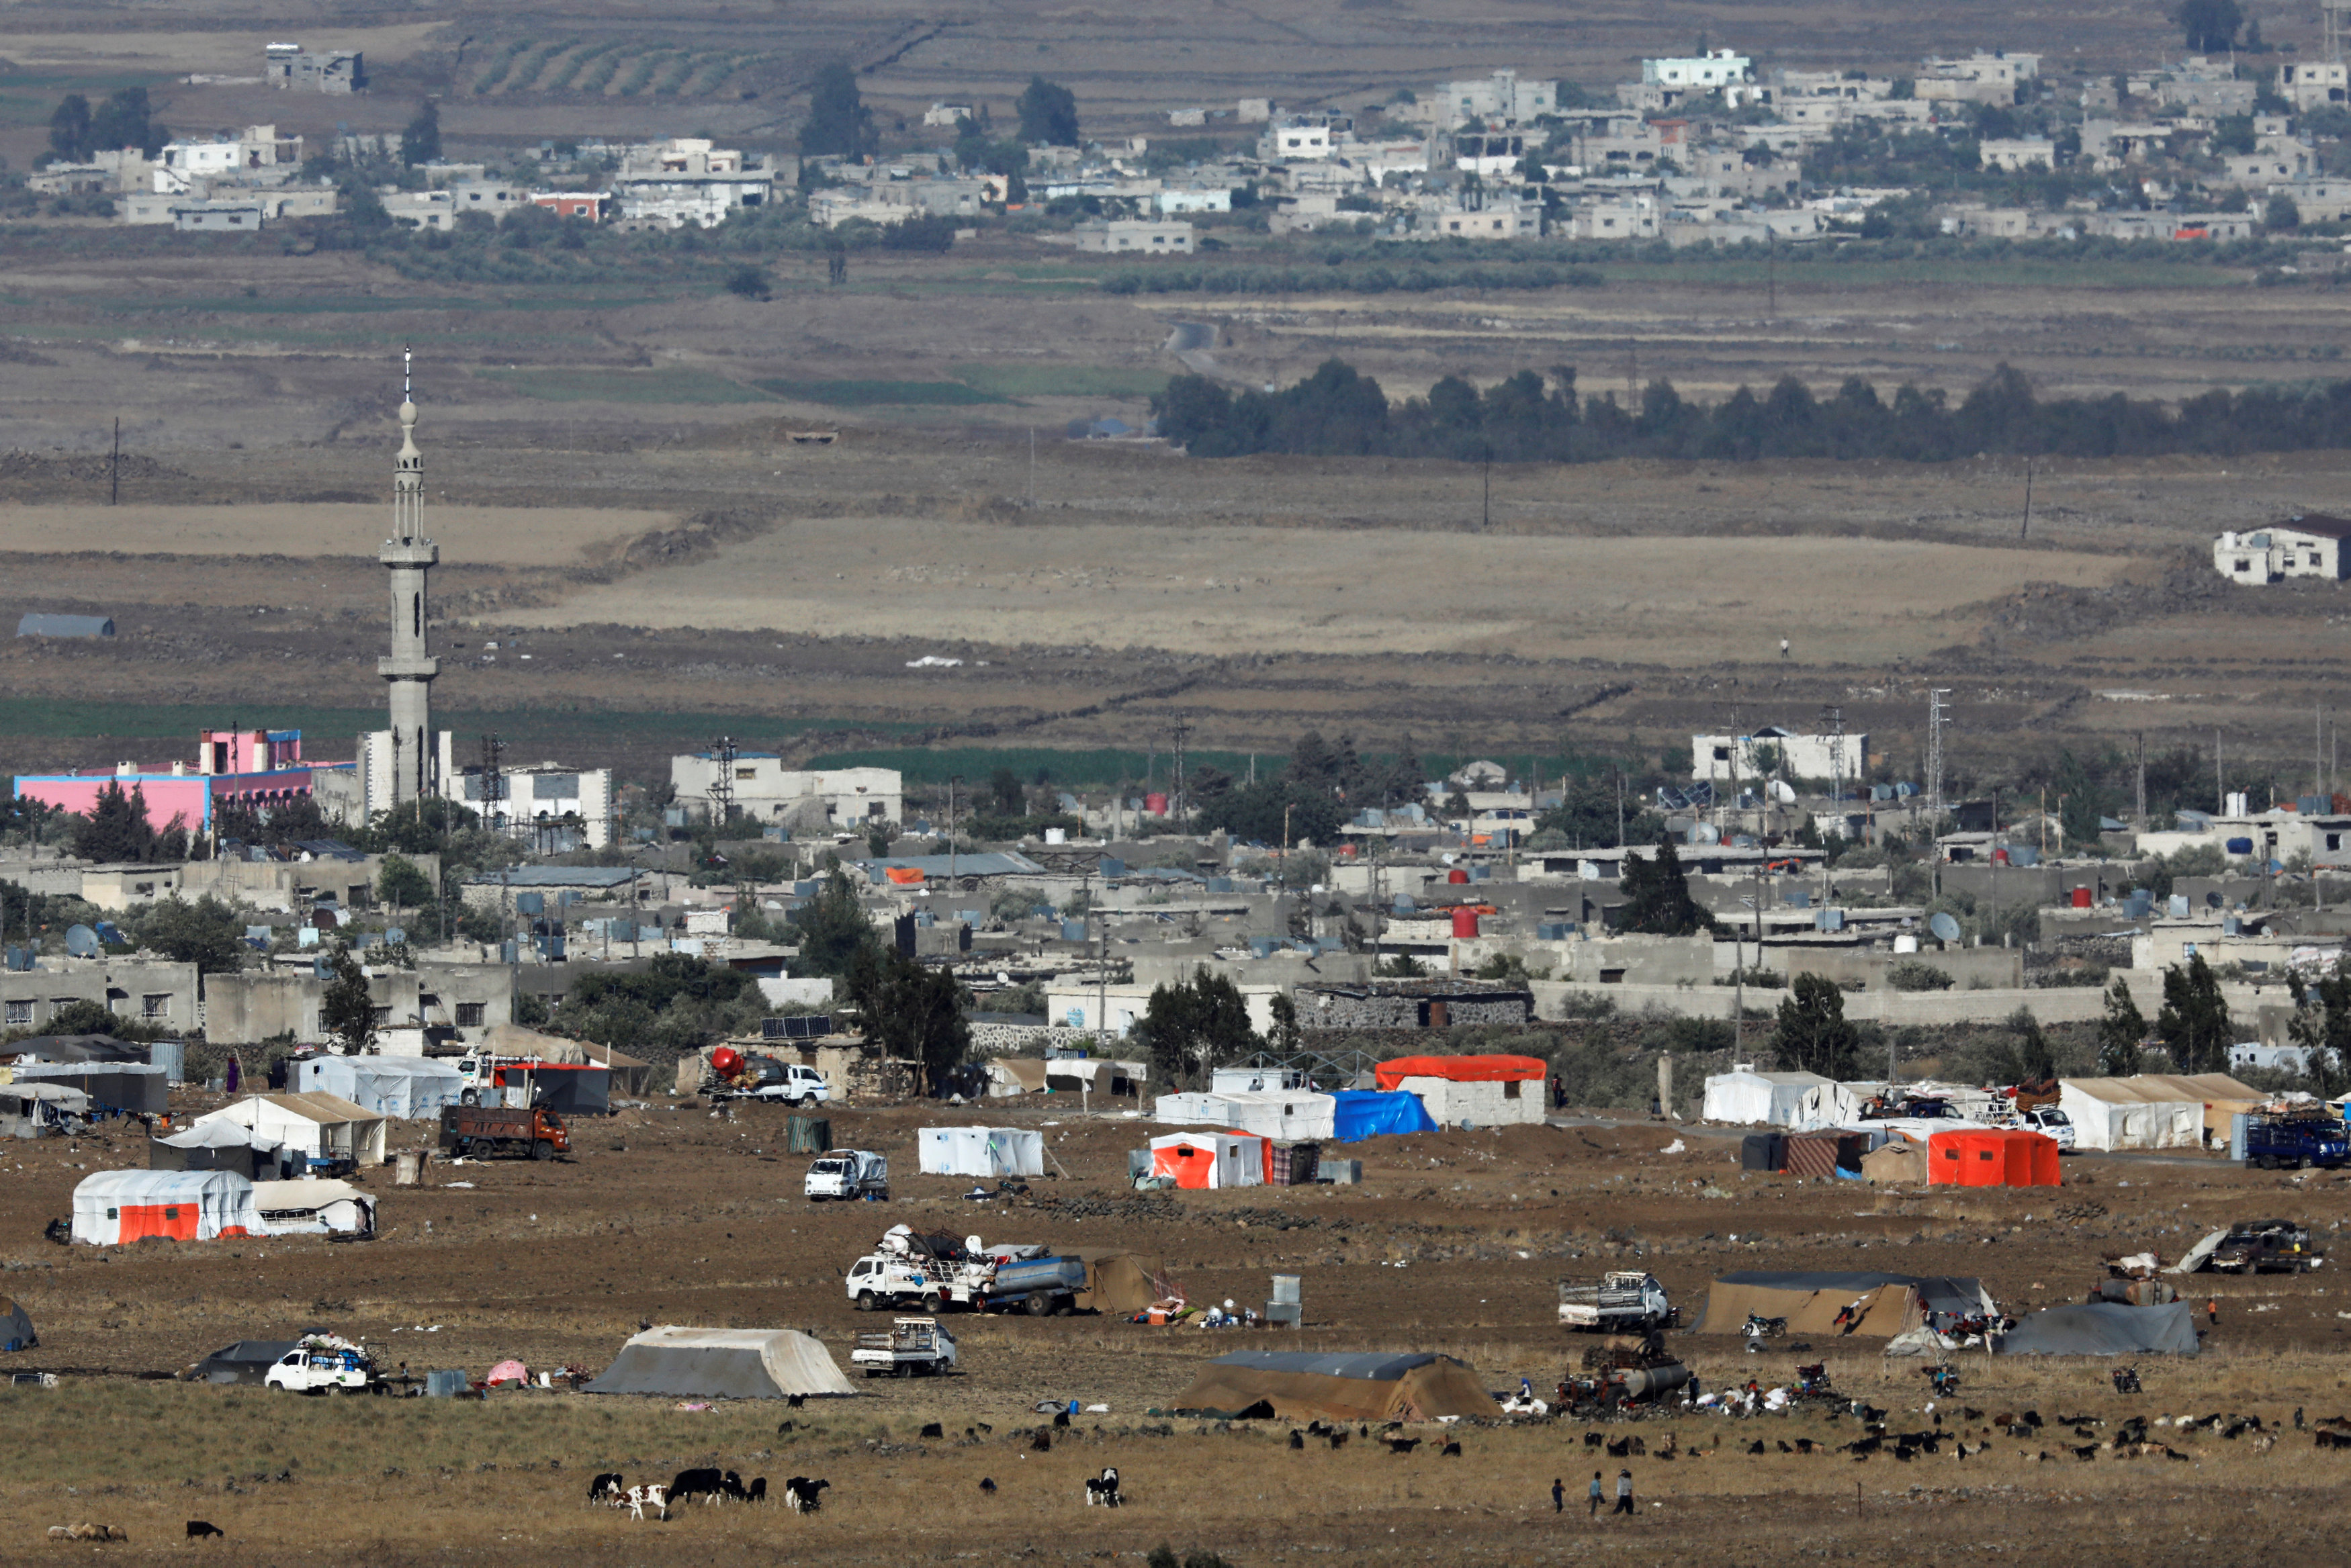 FILE PHOTO: A general view shows refugee tents erected at the Syrian side of the Israeli-Syrian border as it is seen from the Israeli-occupied Golan Heights, Israel July 19, 2018. REUTERS/Amir Cohen -/File Photo